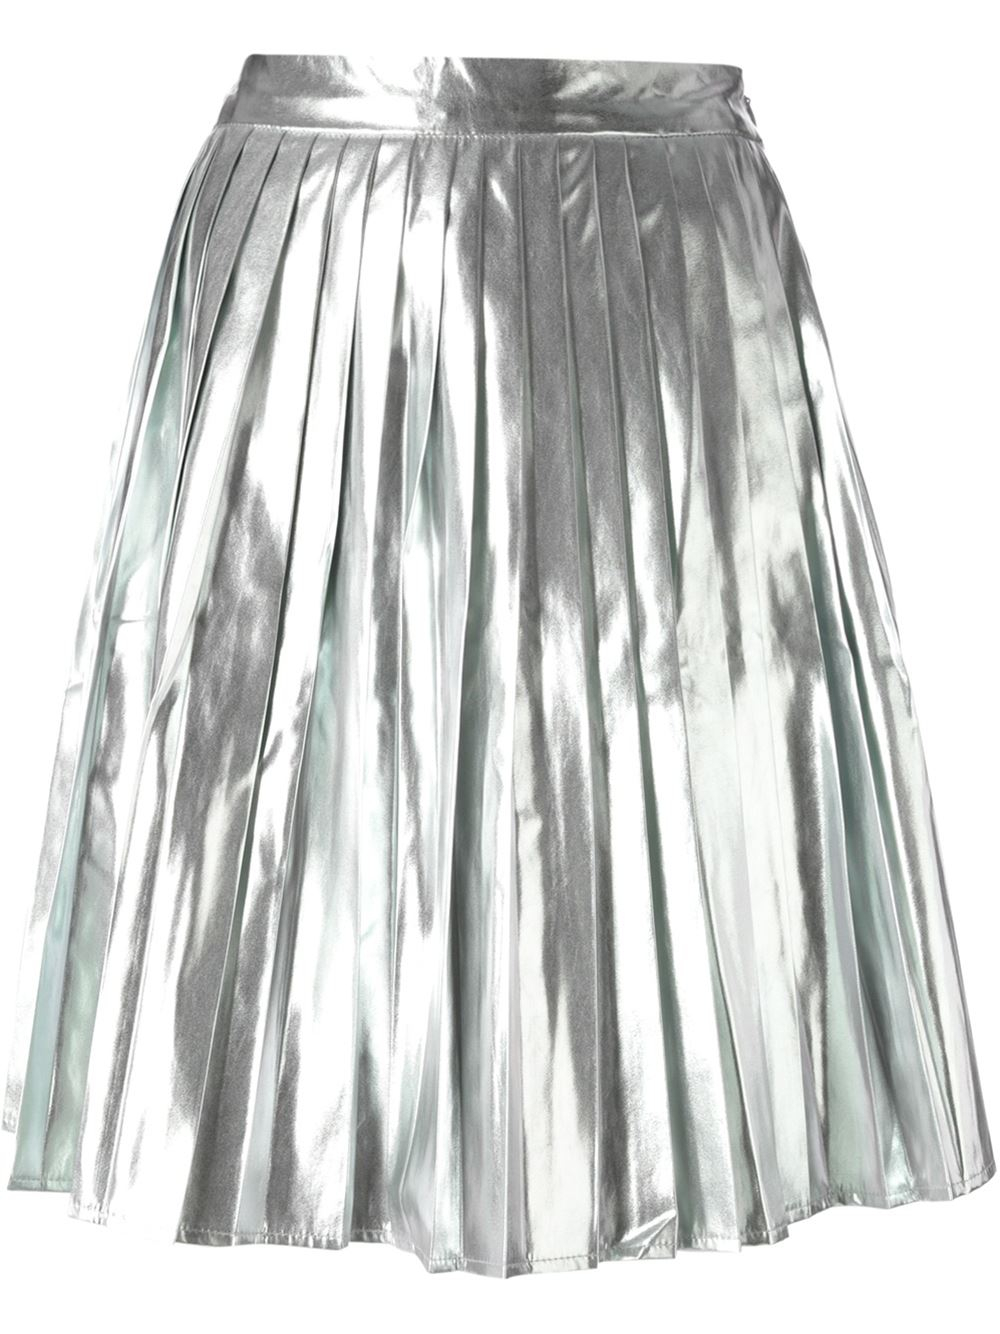 Silver Metallic Skirt 34